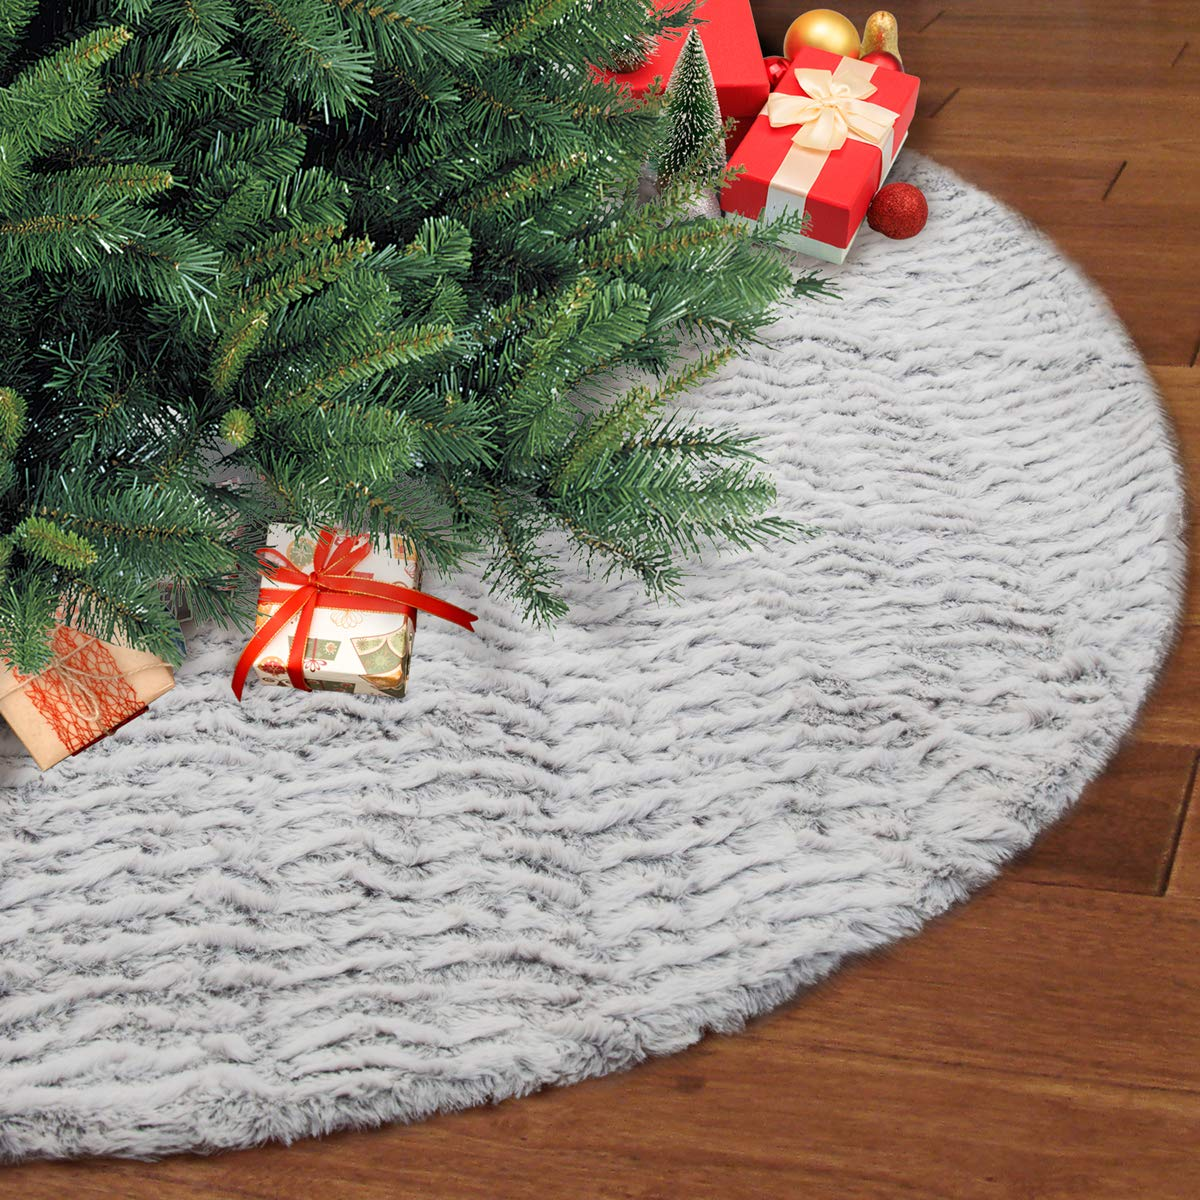 S-DEAL 48 Inches Faux Fur Christmas Tree Skirt Decoration Double Layers Soft Carpet Xmas Holiday Party Ornaments Indoor Outdoor Decorative Gift Grayish White